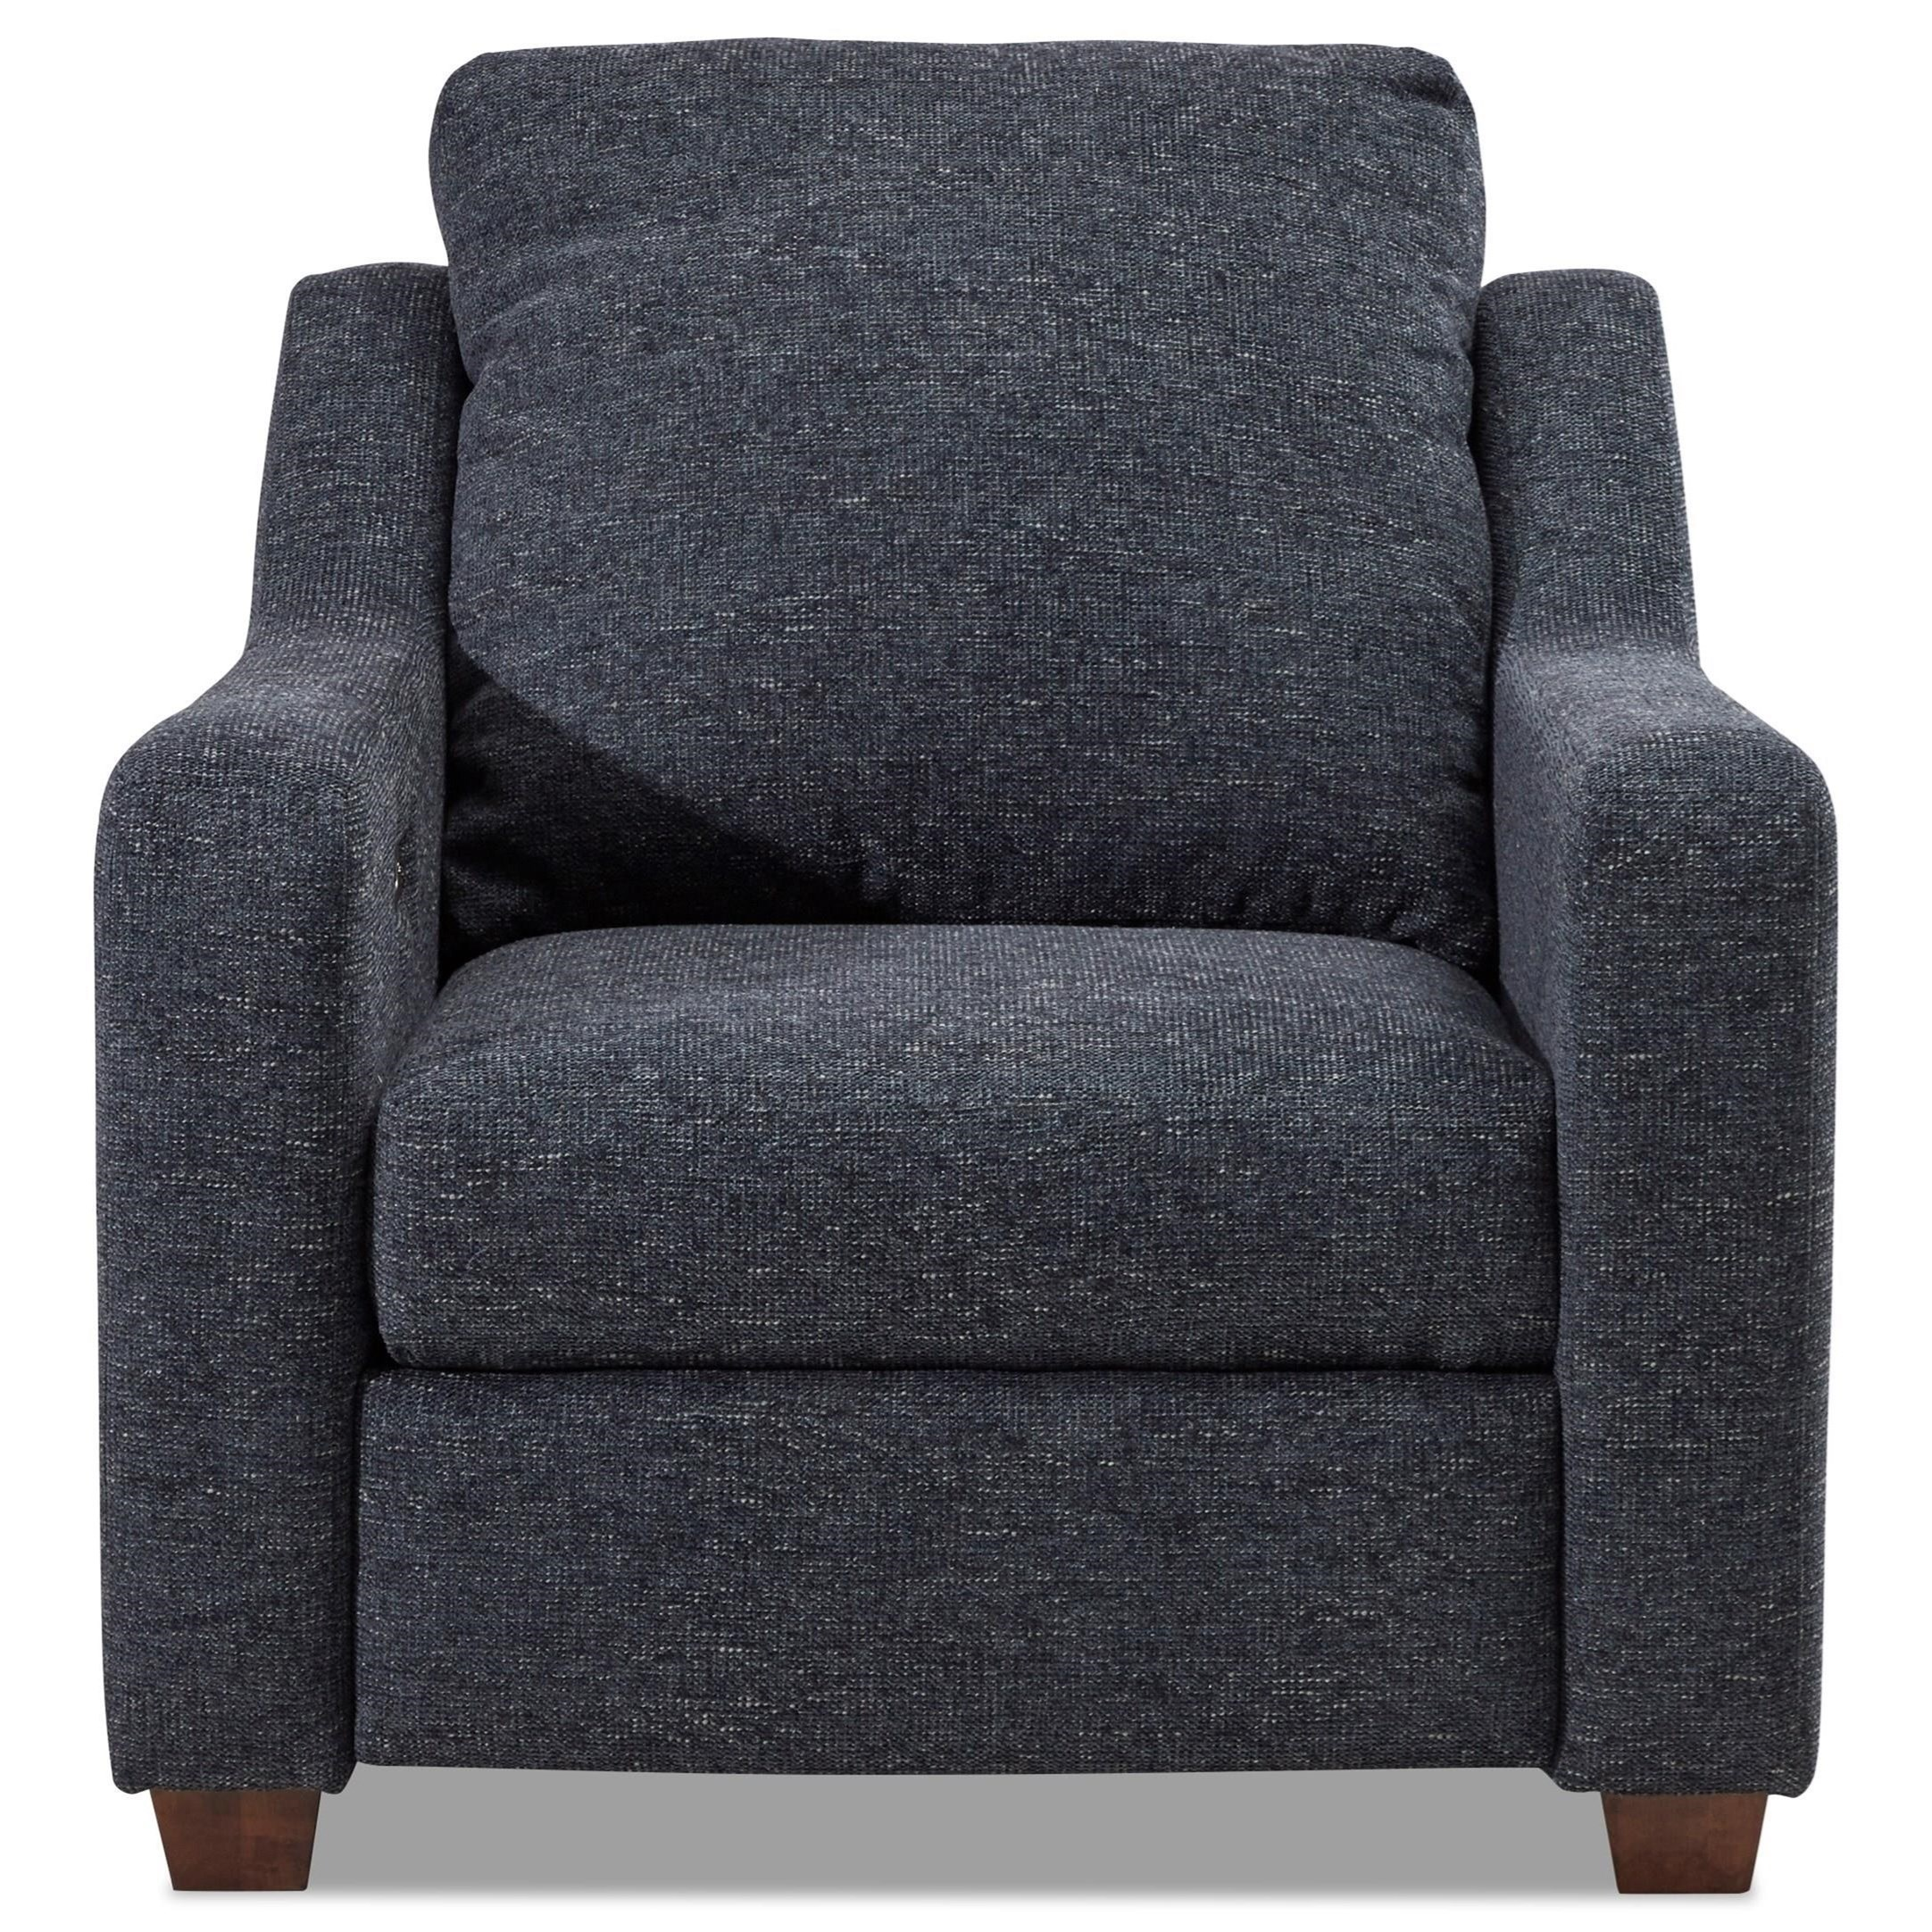 Pryor Power Recliner by Klaussner at Northeast Factory Direct